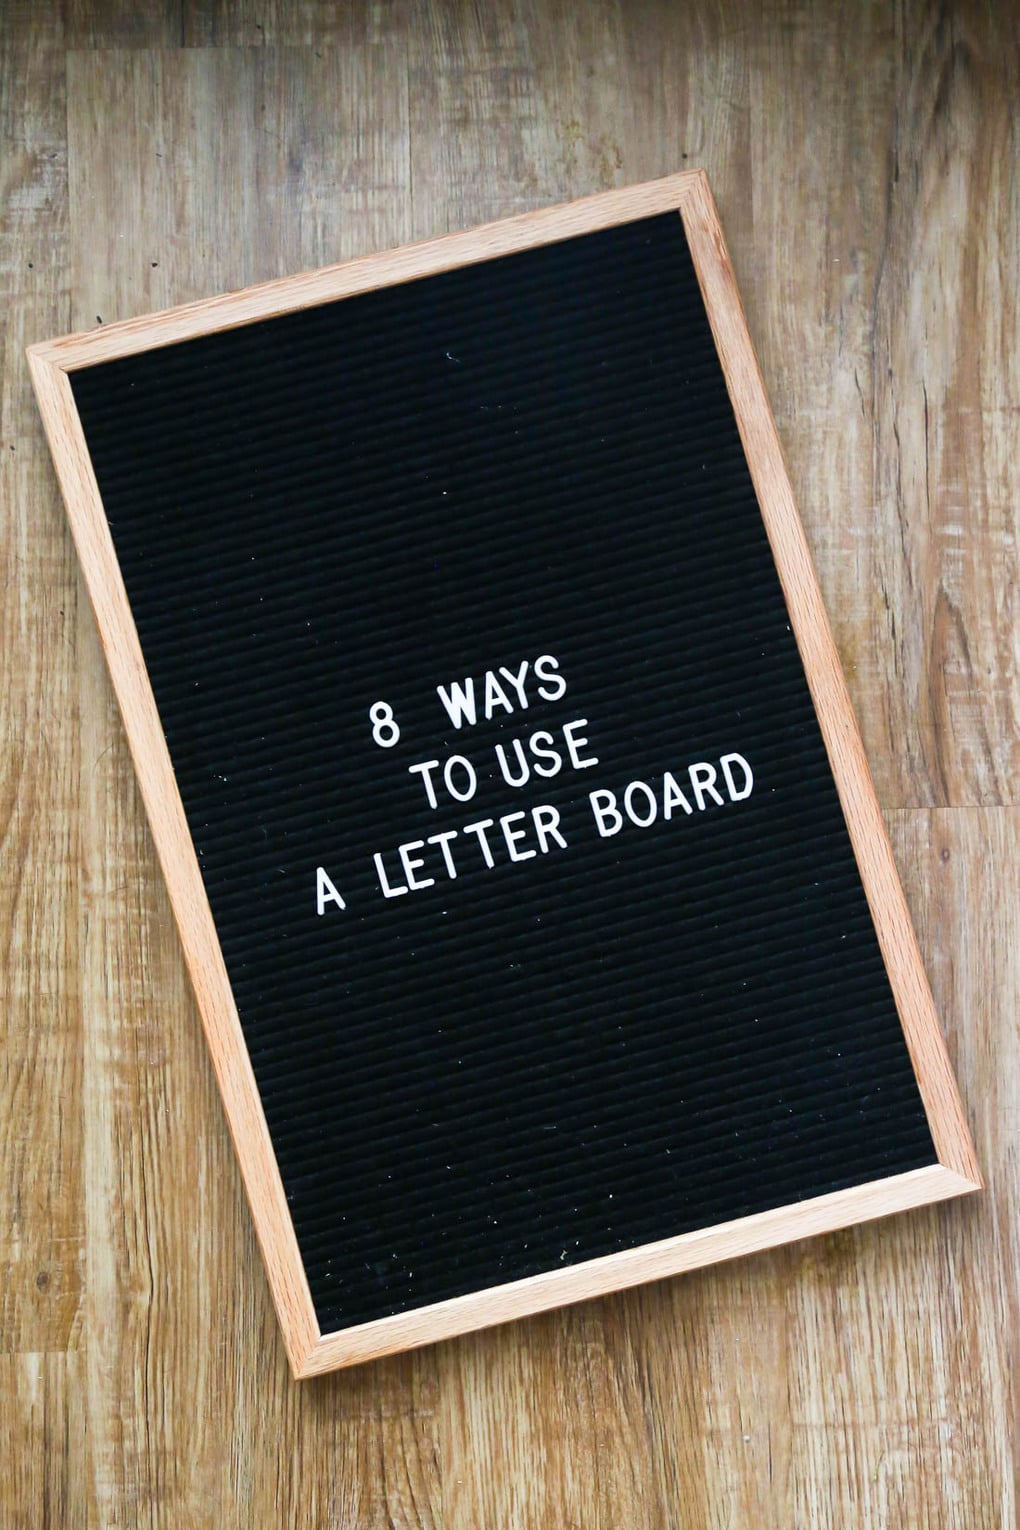 Felt letter board with text - 8 ways to use a letter board